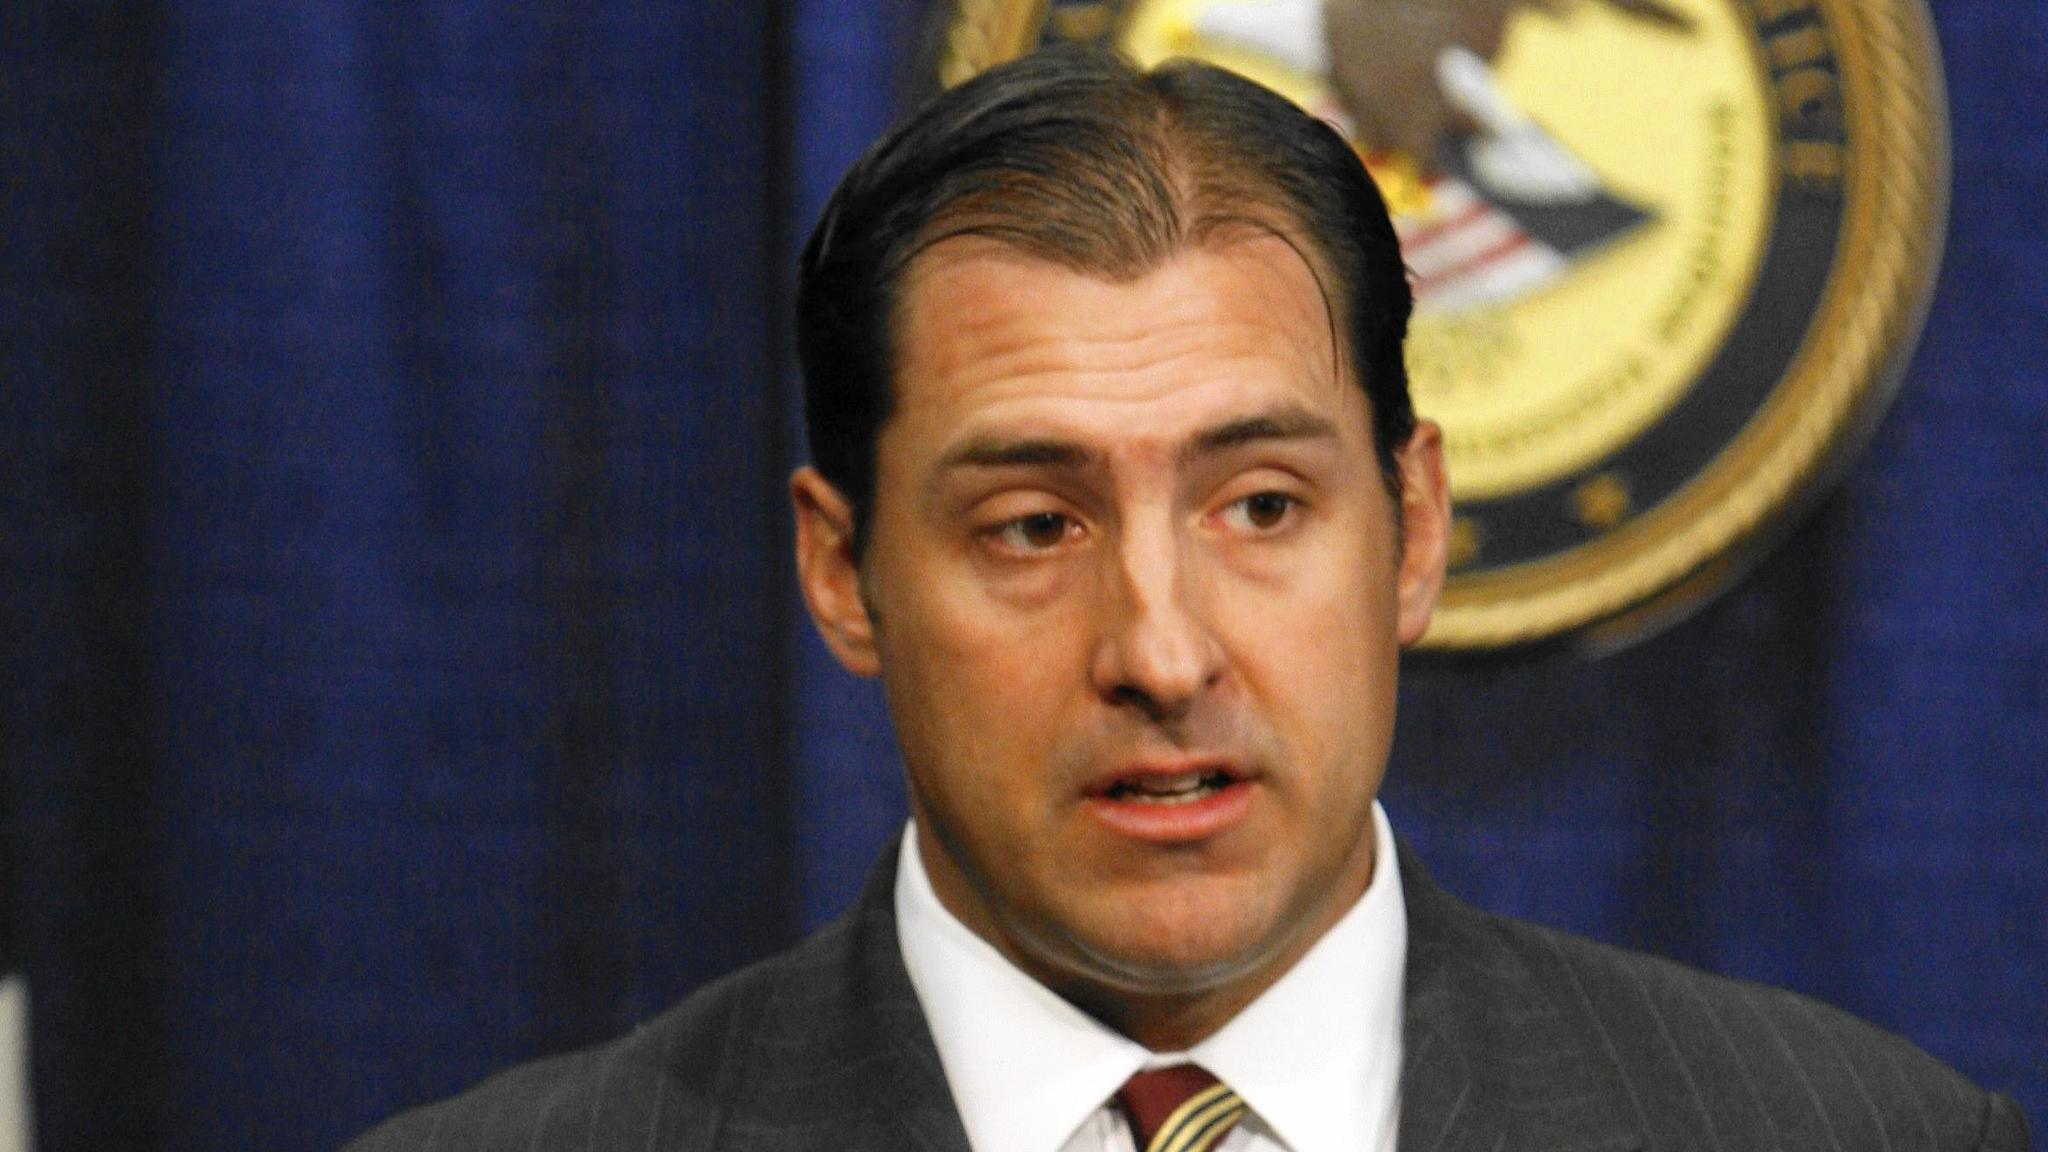 U.S. attorney nominee for Chicago, a former Ivy Leaguer ...